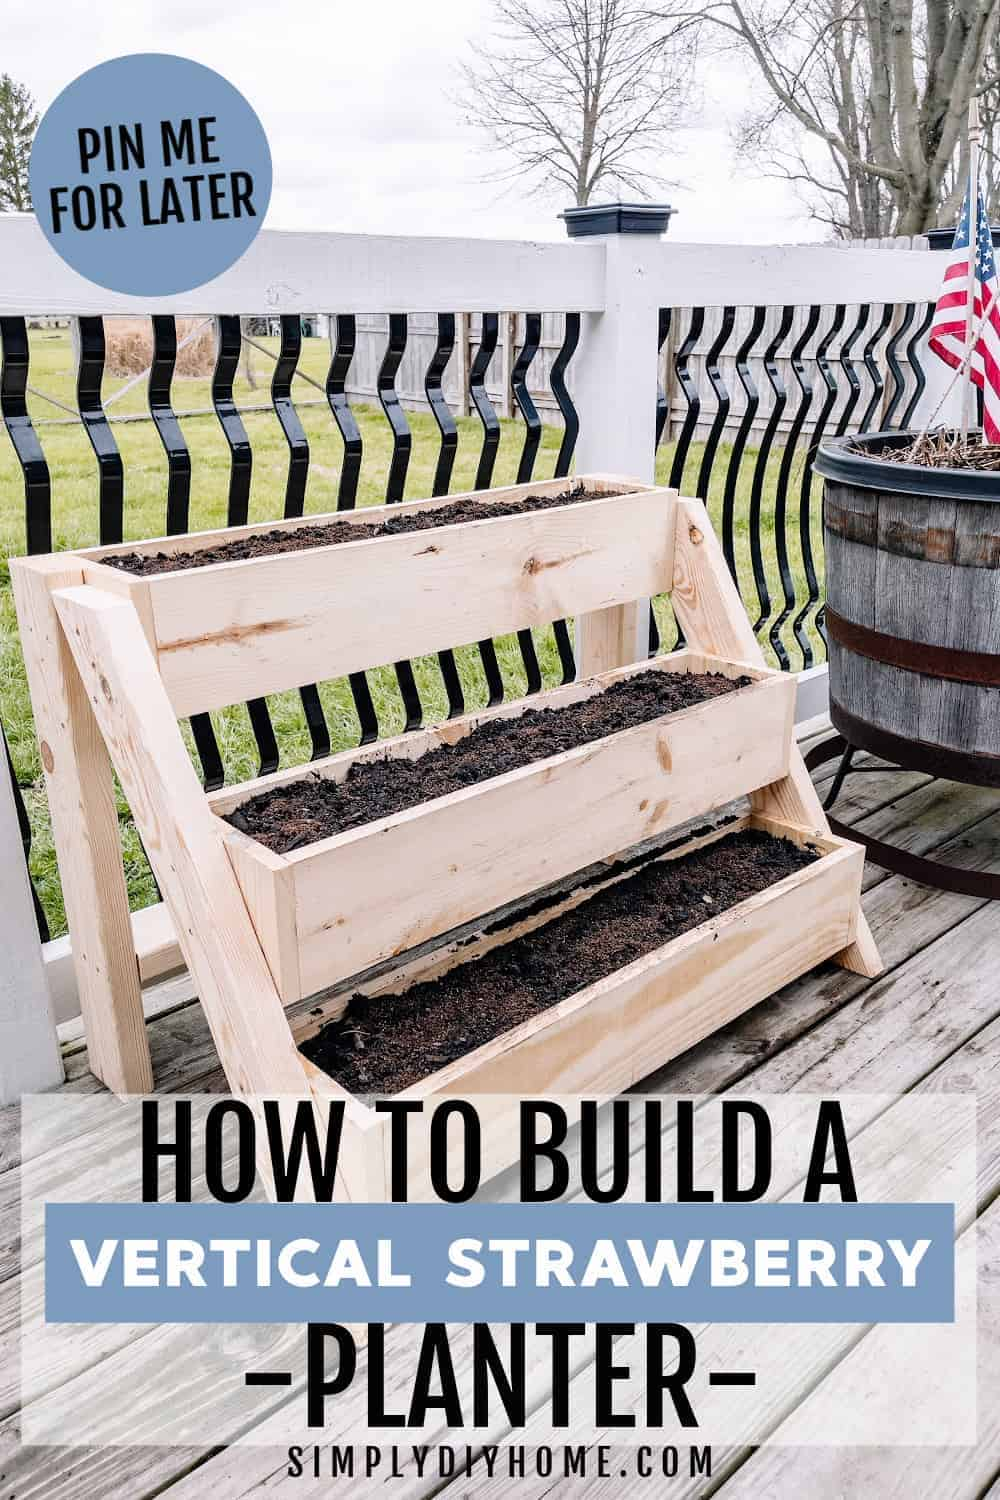 How to build a DIY Raised Garden Planter-Vertical 3 Tiered Strawberry Planter